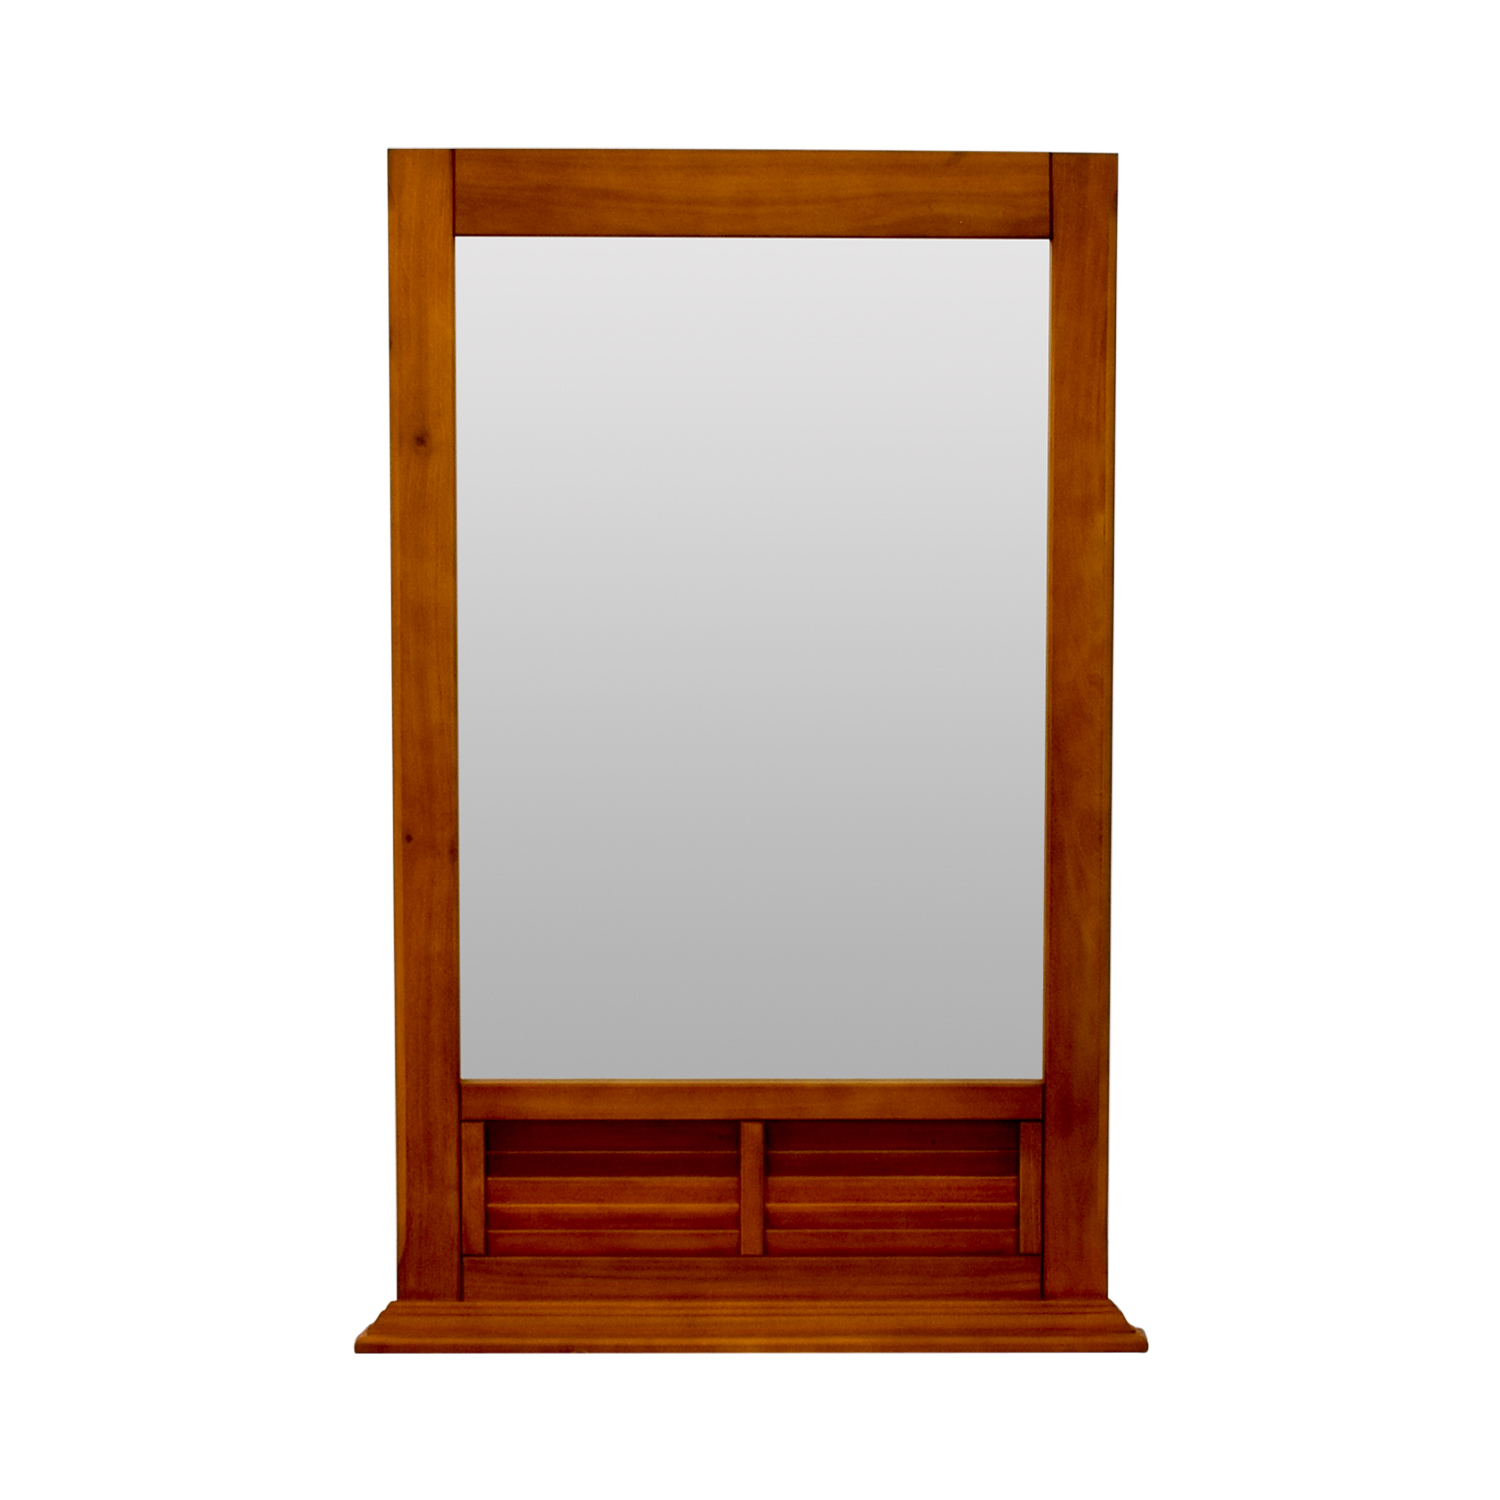 Natural Wood Window Pane Mirror second hand